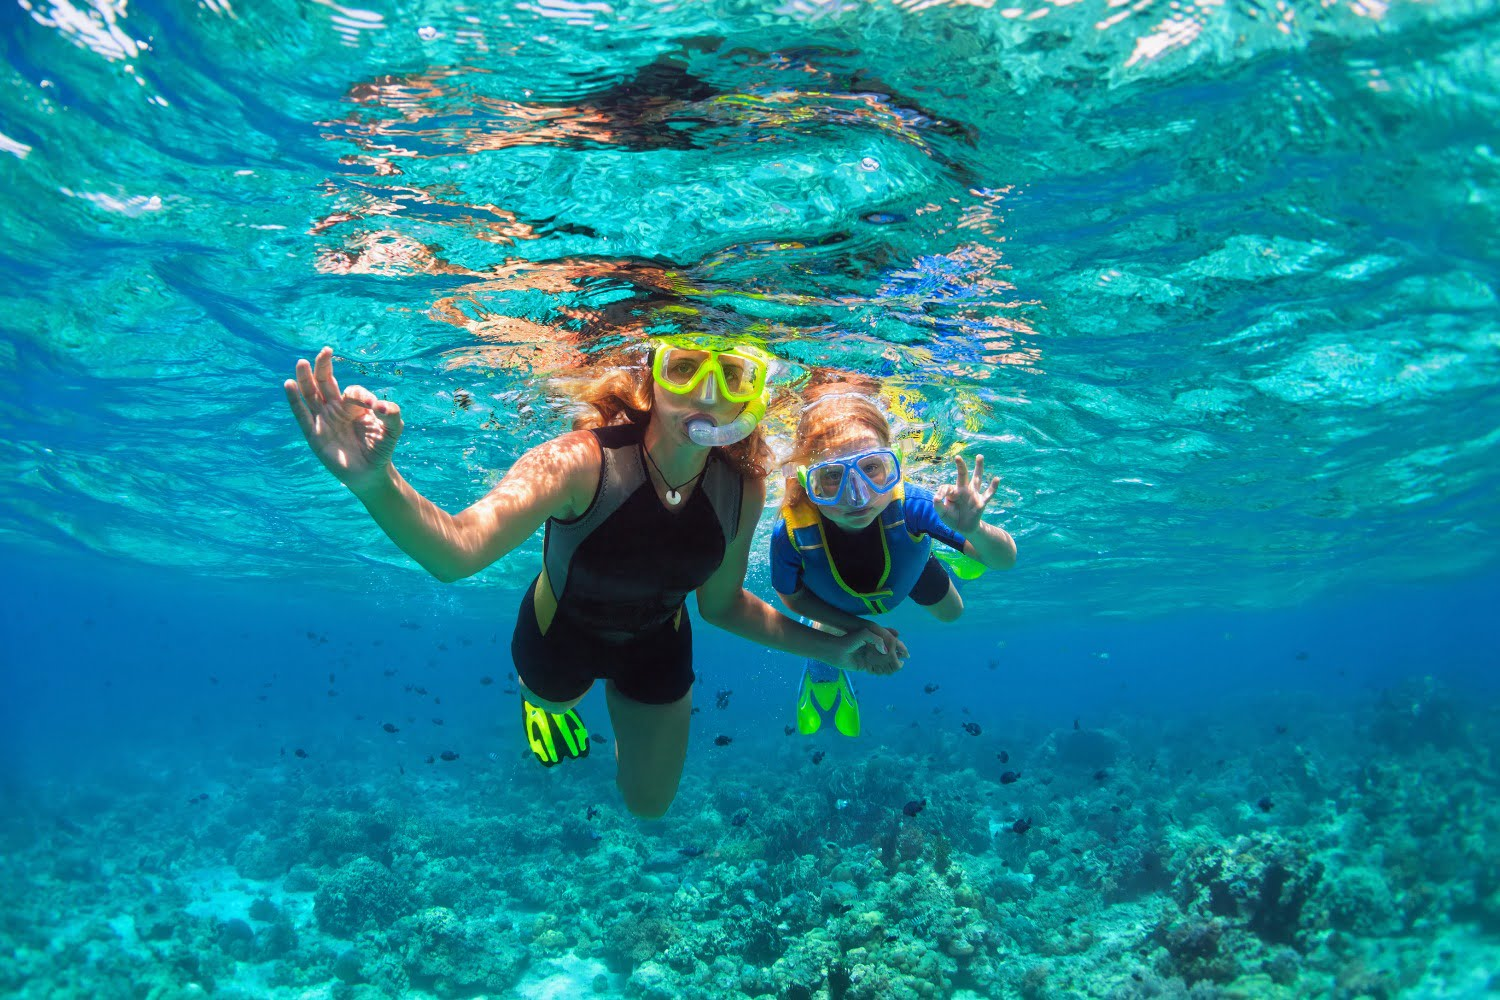 Mother and Child snorkeling